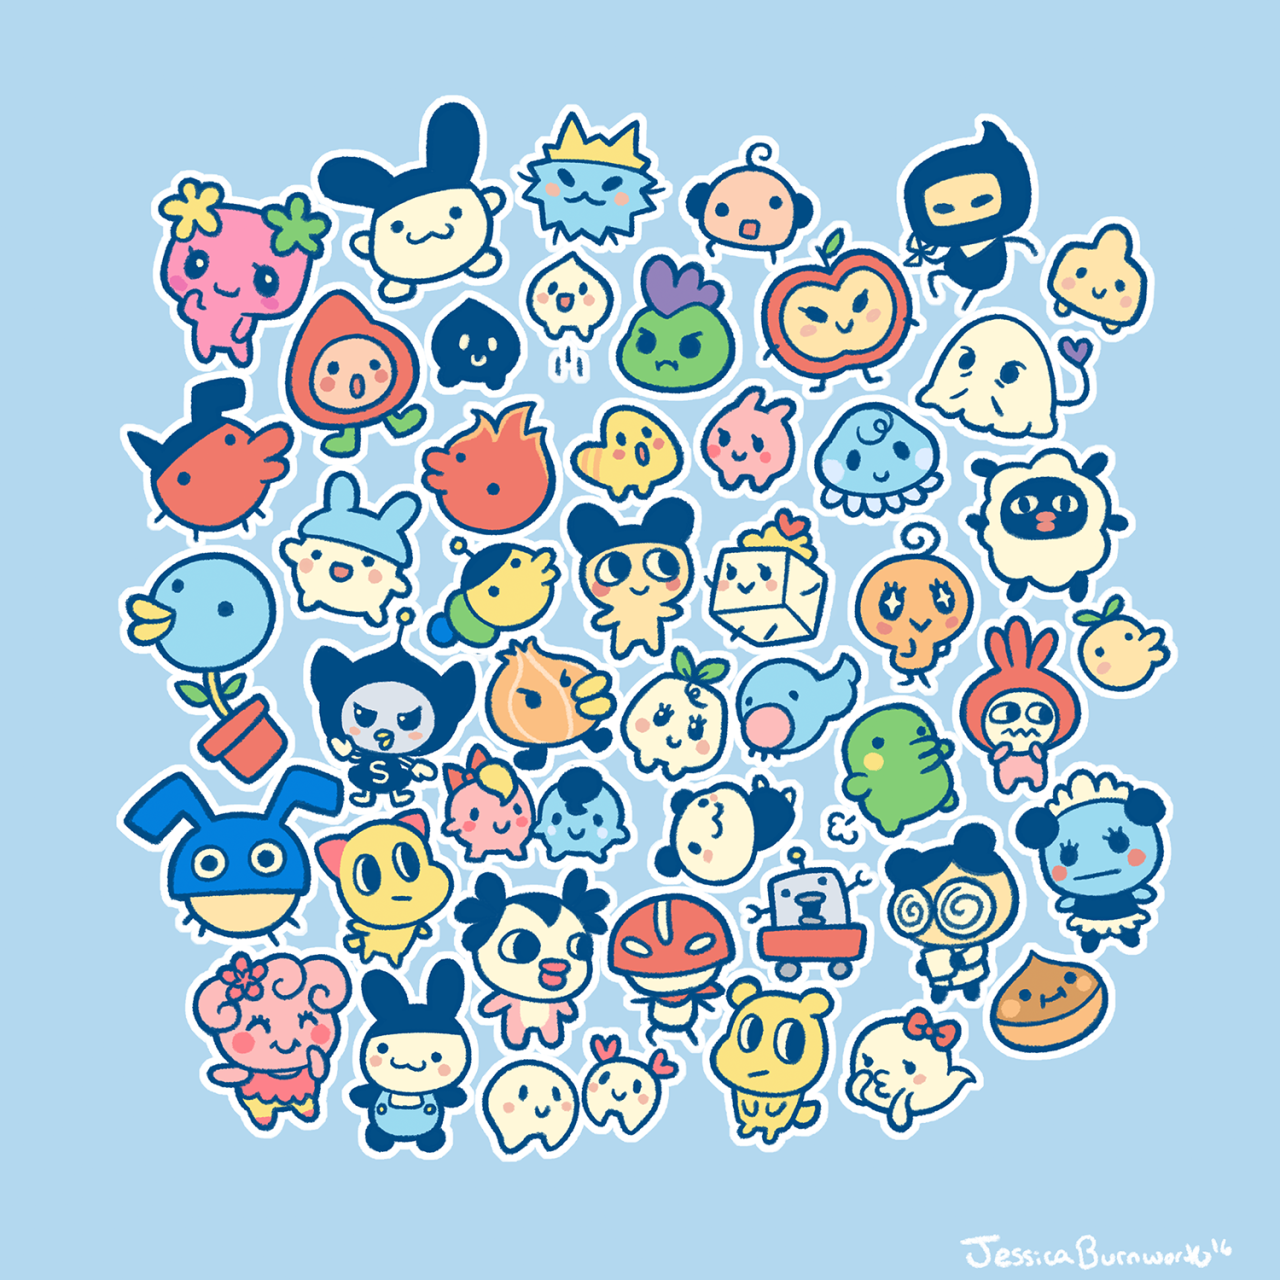 Tamagotchis in cute costumes cute critters pinterest tamagotchis in cute costumes cute critters pinterest philippines and videogames geenschuldenfo Image collections